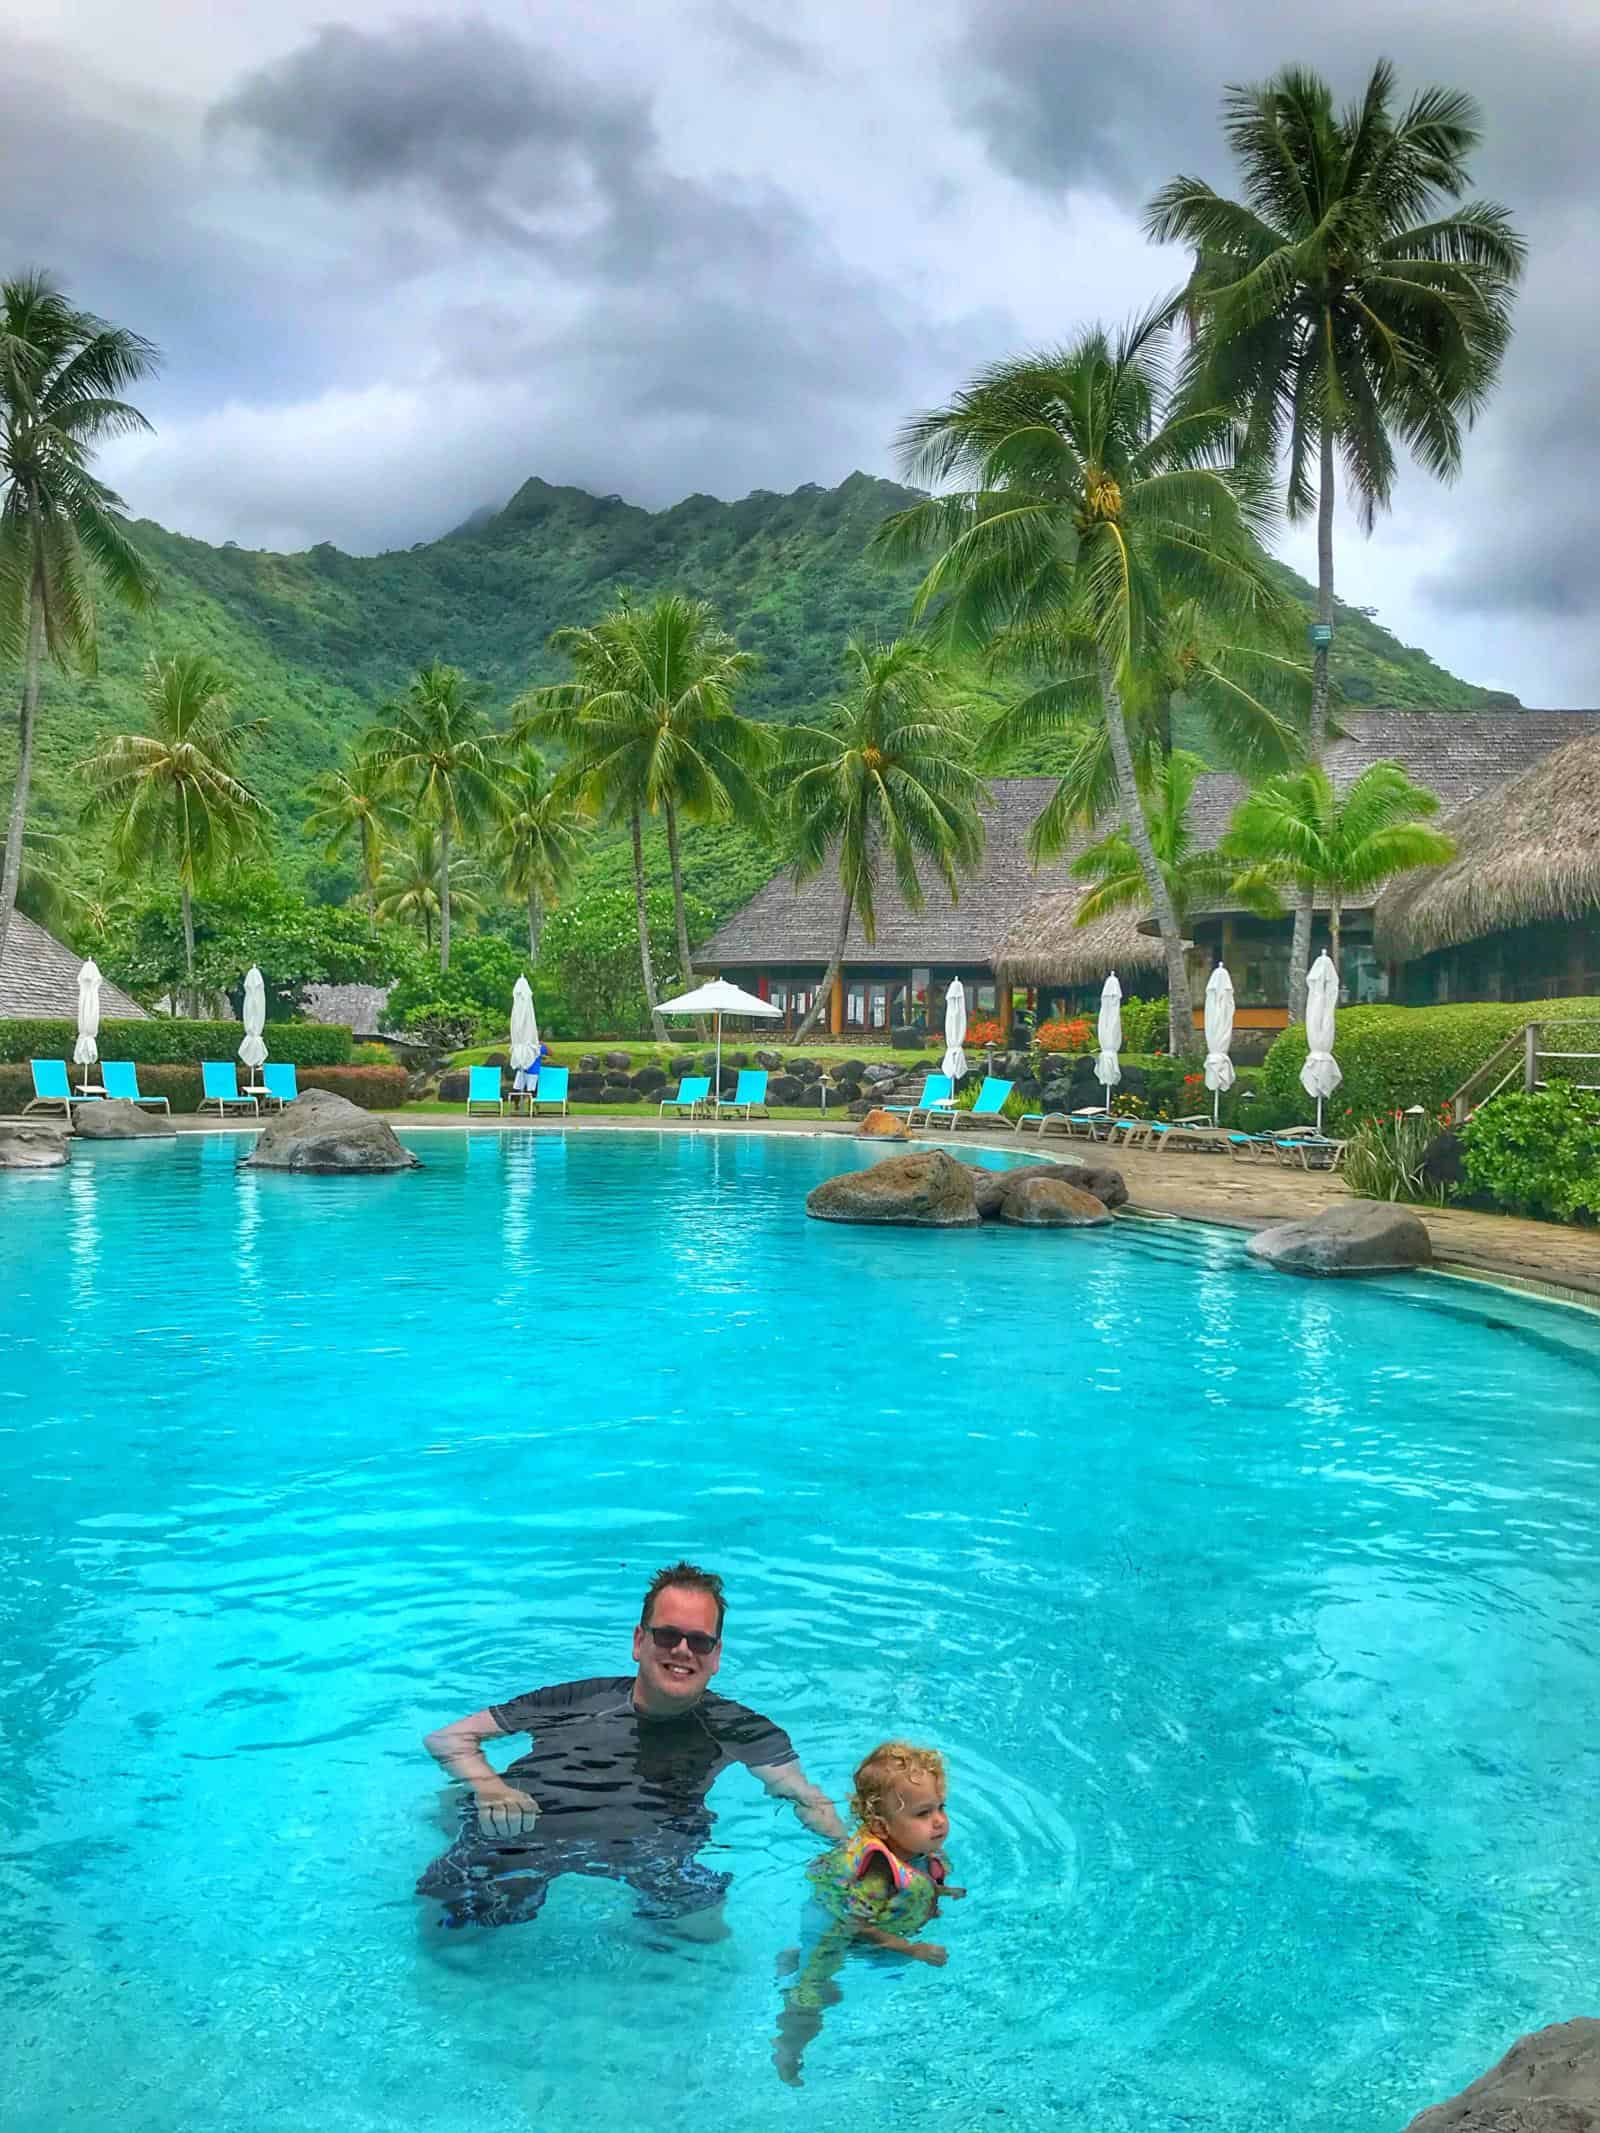 Best Things to do in Moorea - Day Pass at Hilton Moorea - Where to Stay in Moorea